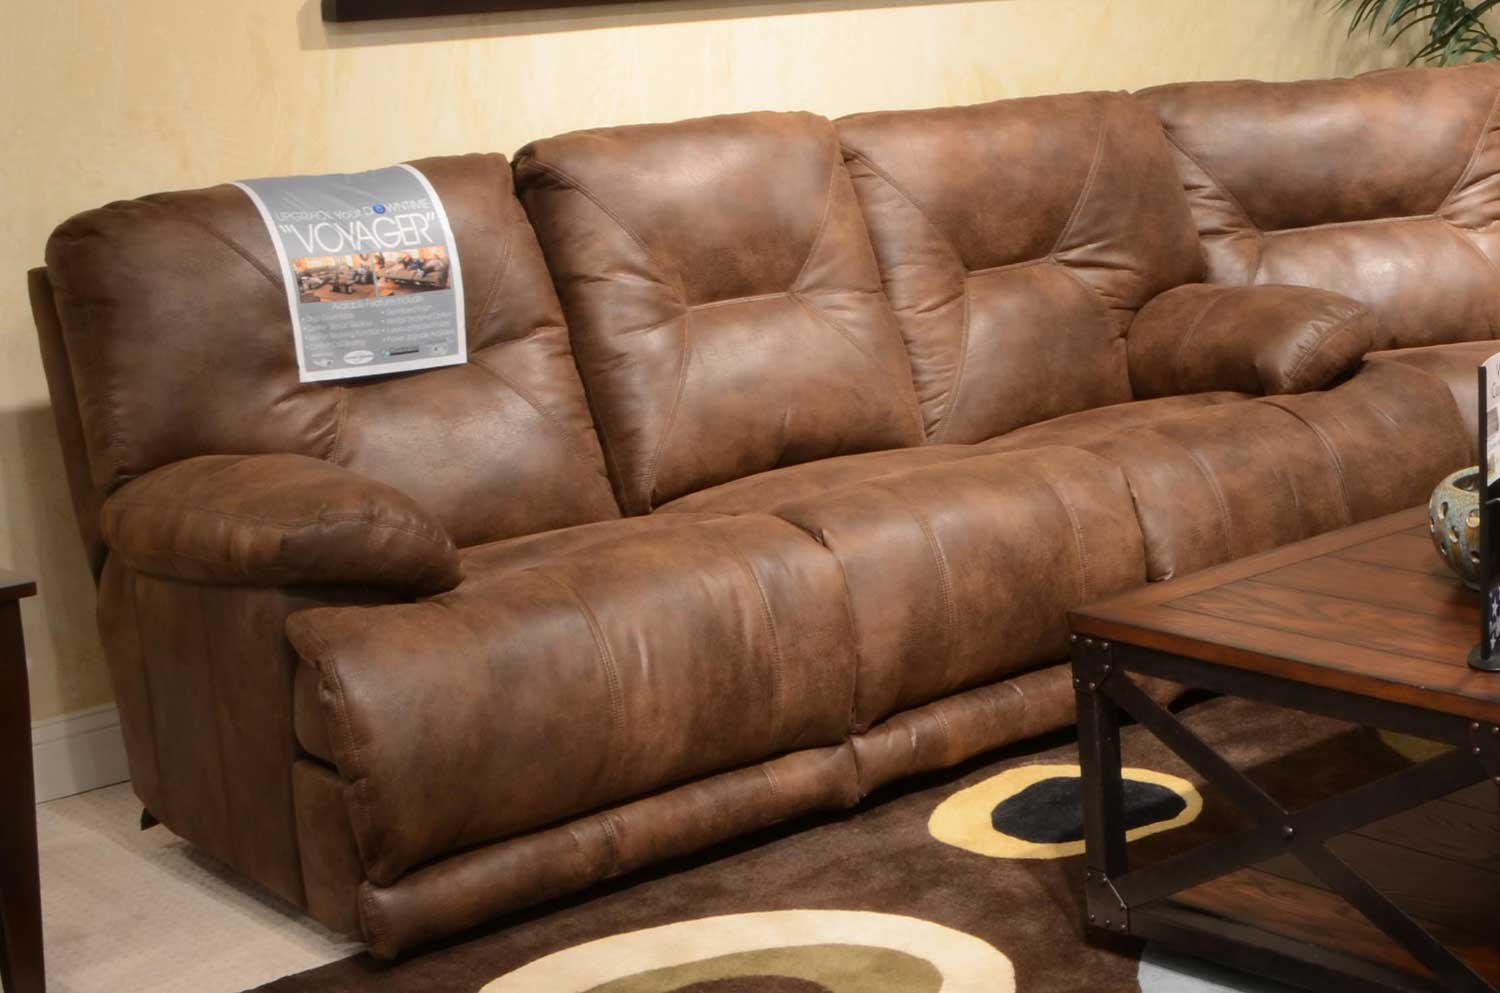 CatNapper Voyager Power Lay Flat Sofa with 3 Recliners and Drop Down Table - Elk